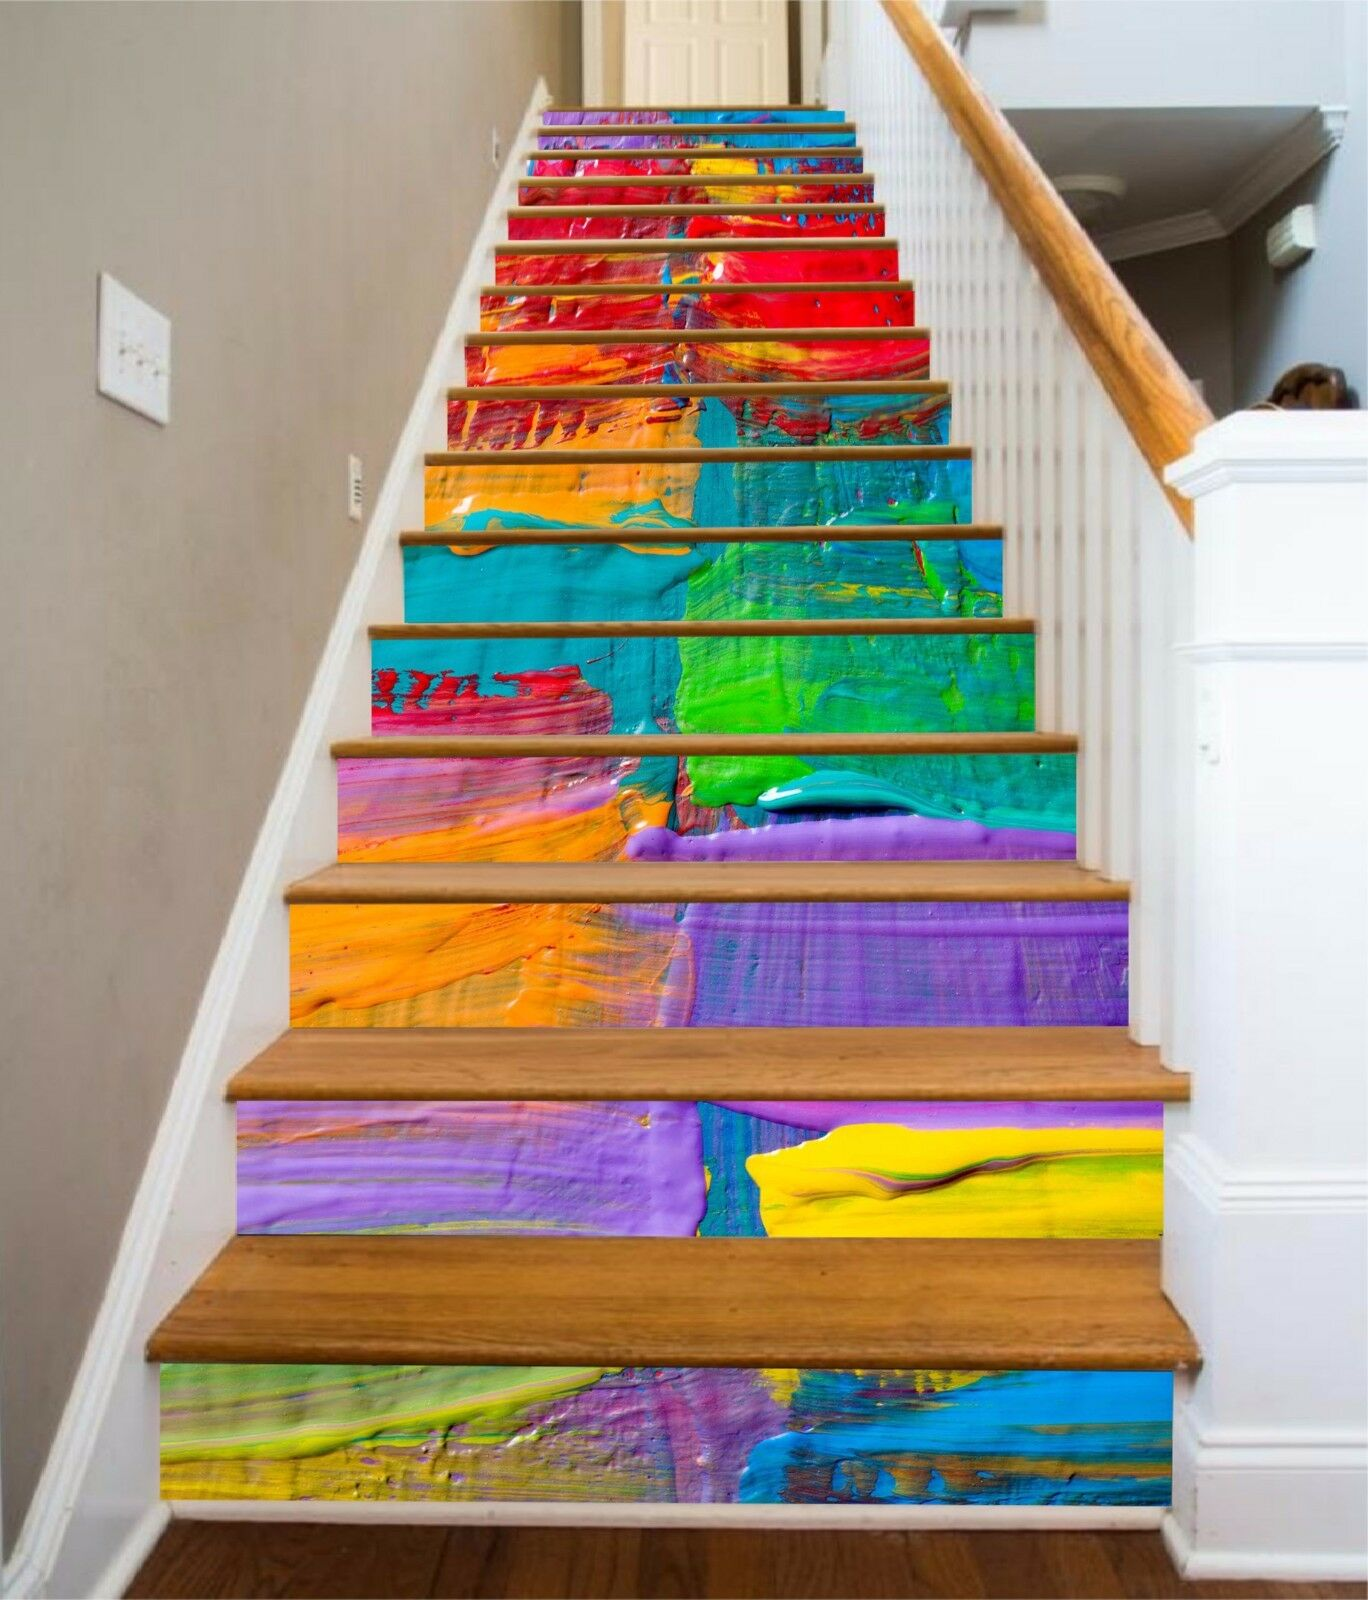 3D Couleur Painting 3 Stair Risers Decoration Photo Mural Vinyl Decal Wallpaper AU